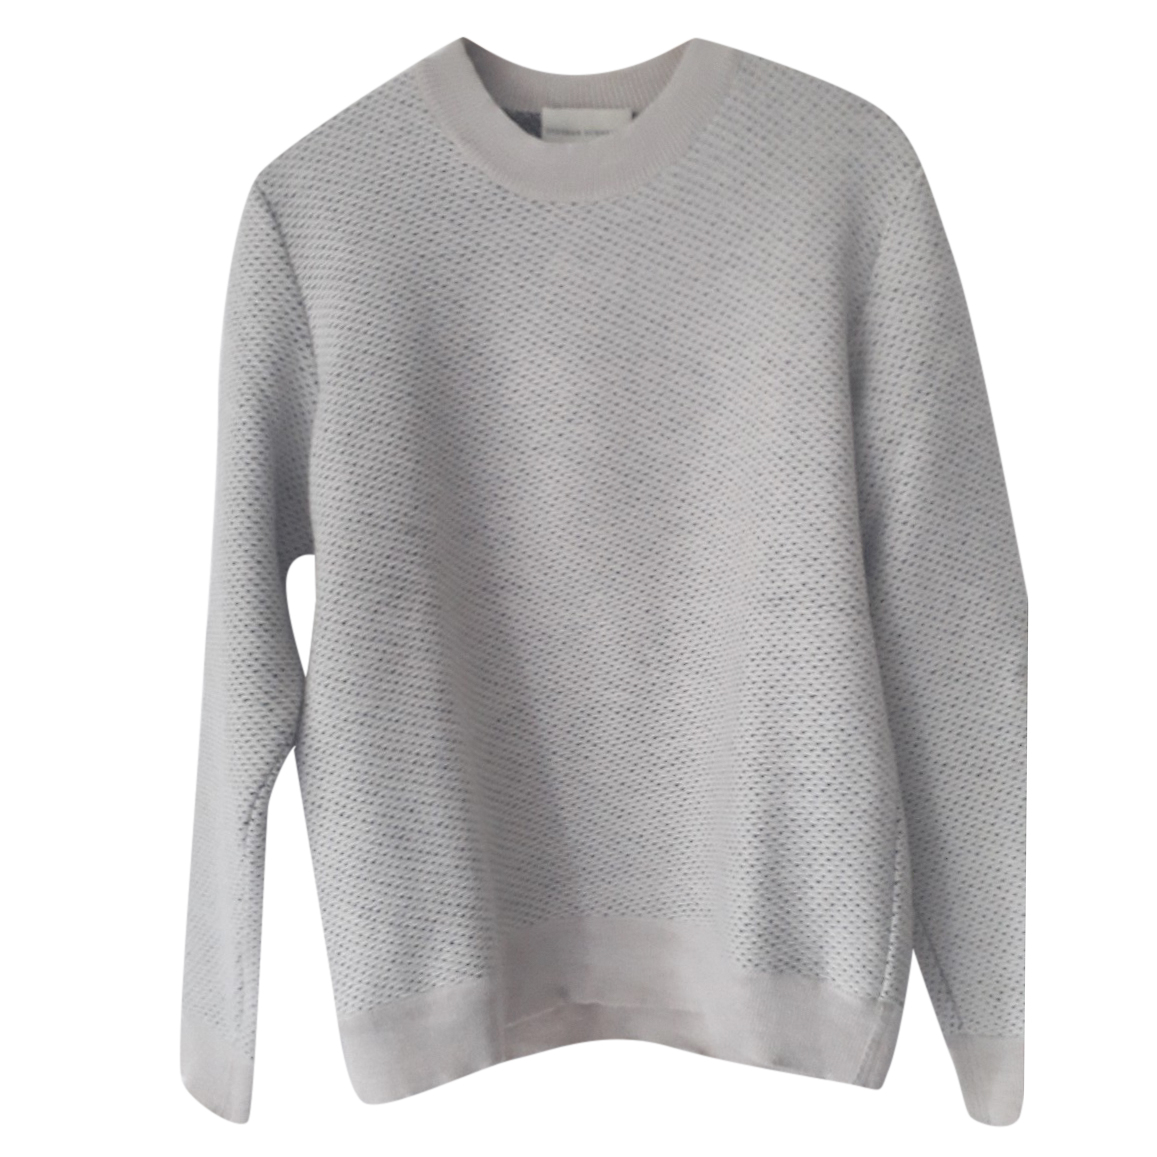 Stephan Schneider Men's Grey Knit Wool Jumper